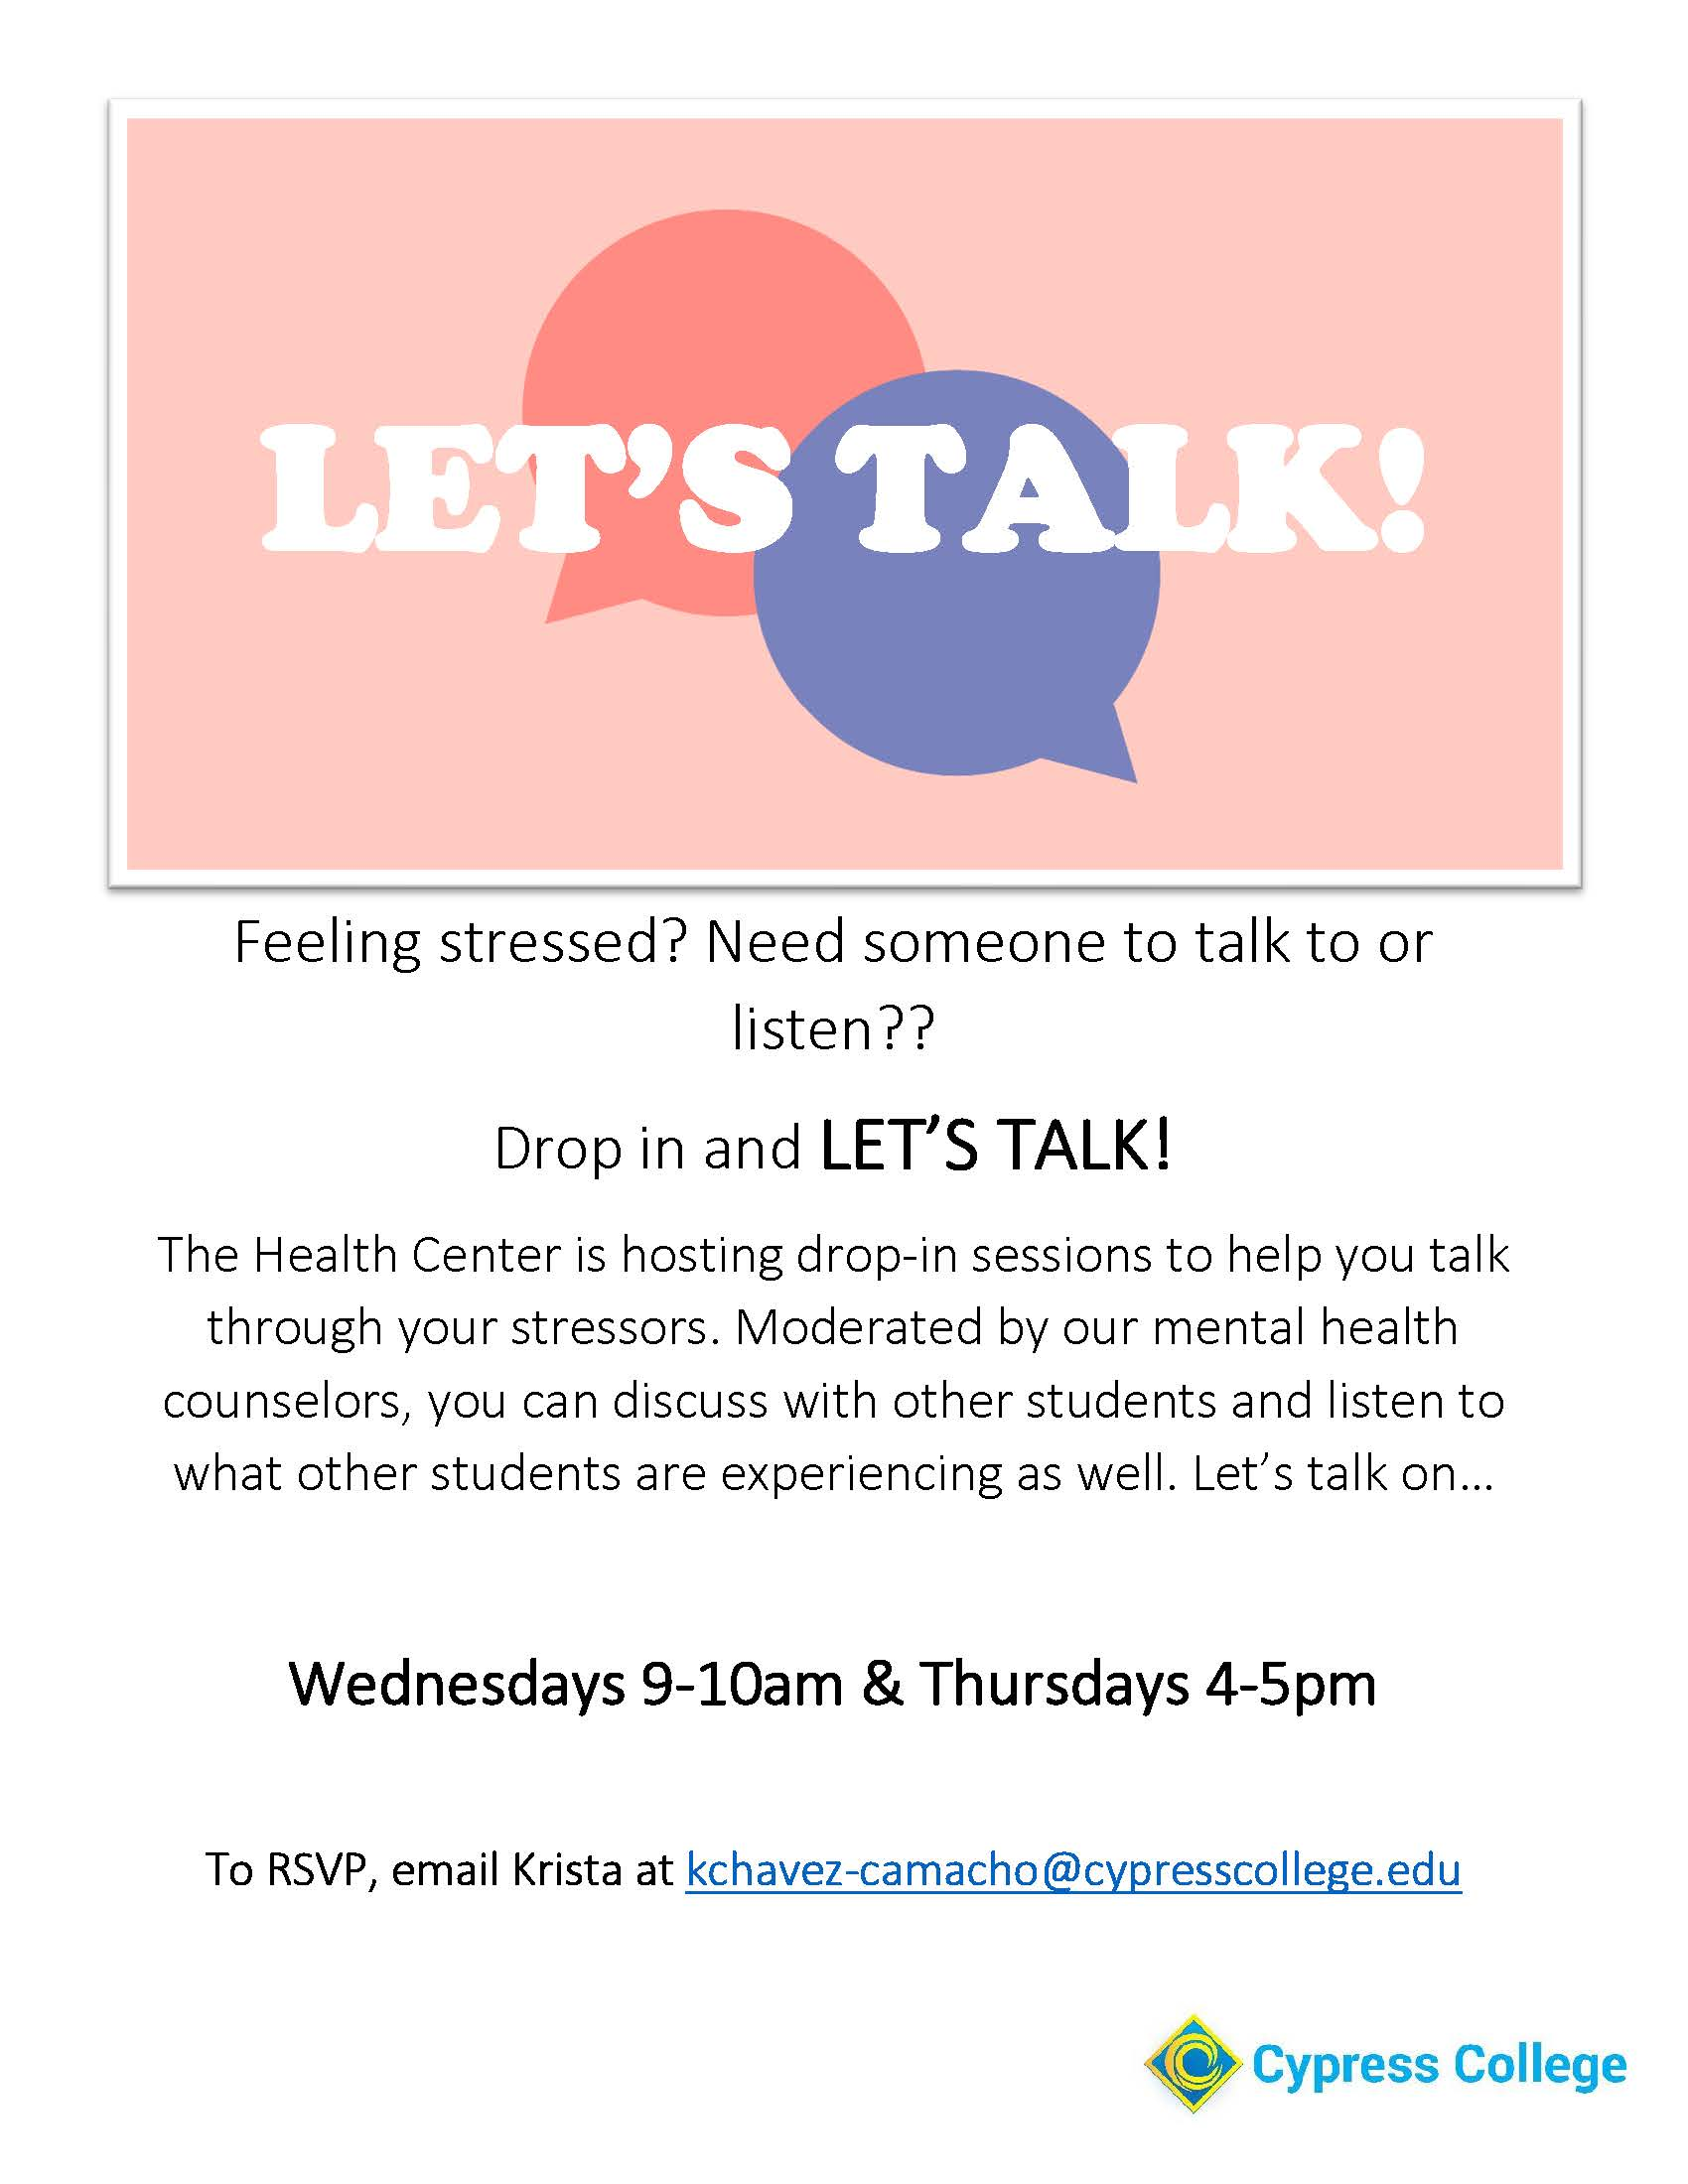 Flyer for Let's Talk, a weekly meeting where people can discuss their issues.